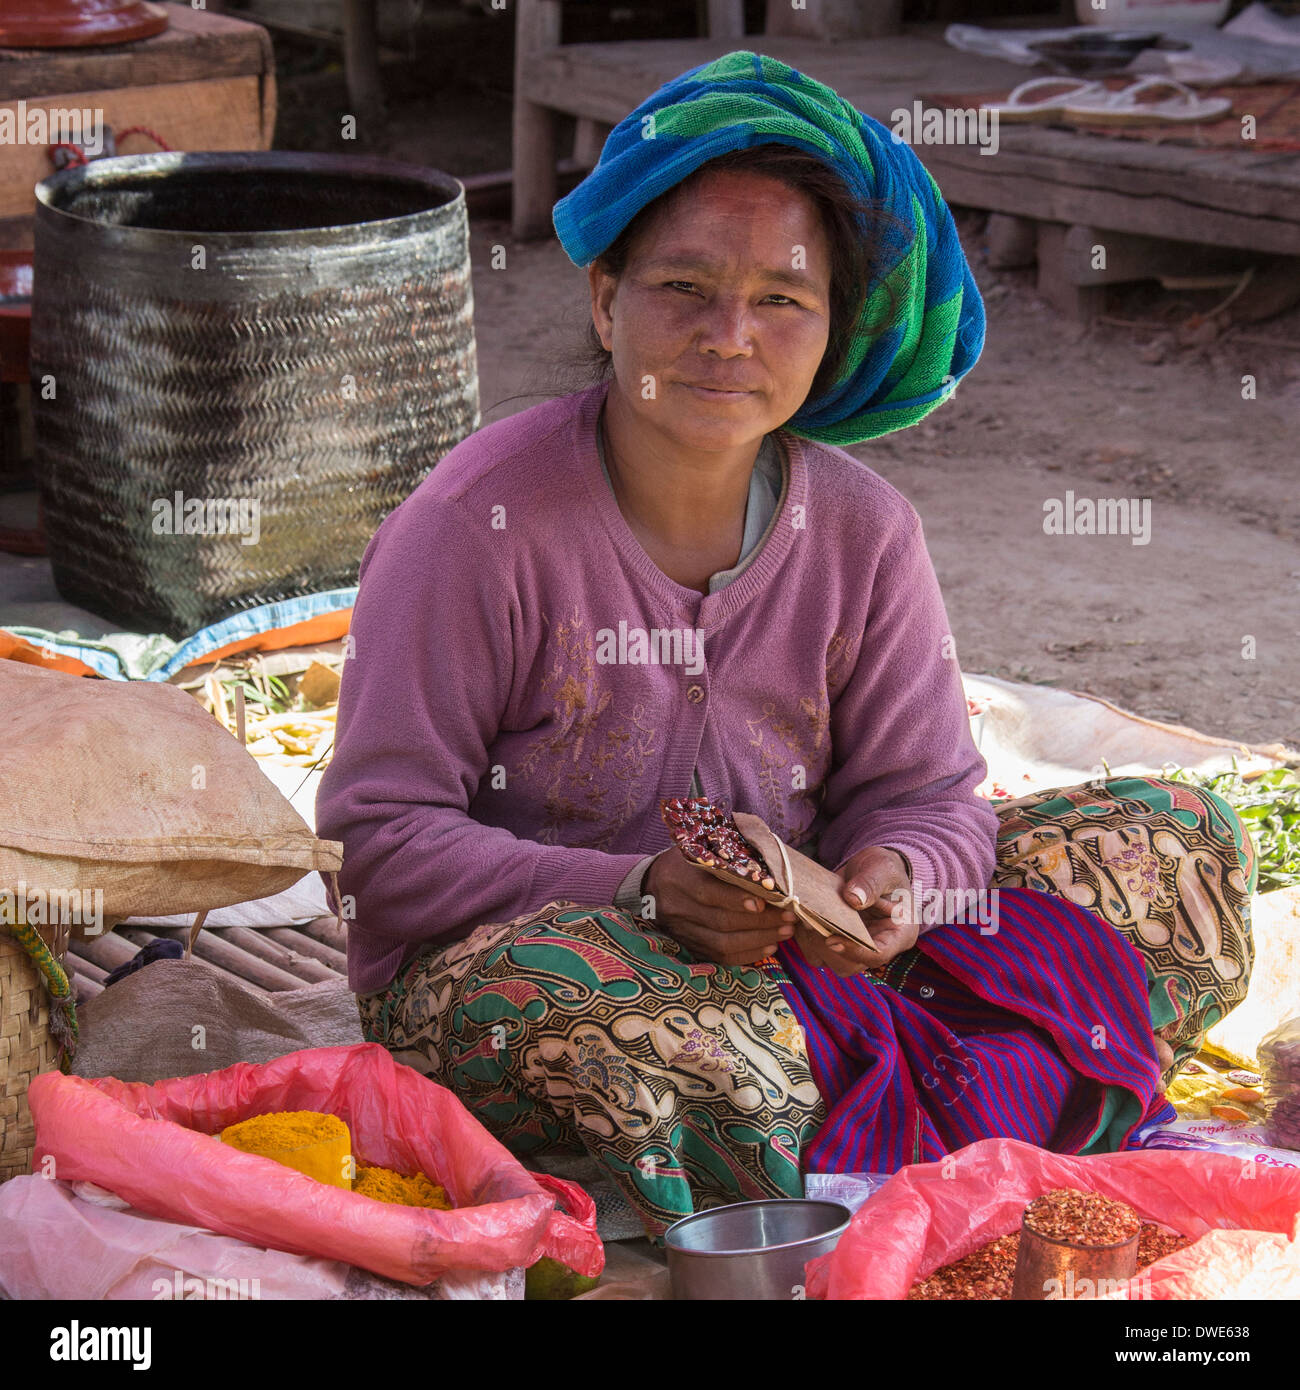 Everyday scene at a market in the ancient city of Bagan in Mayanmar (Burma) - Stock Image